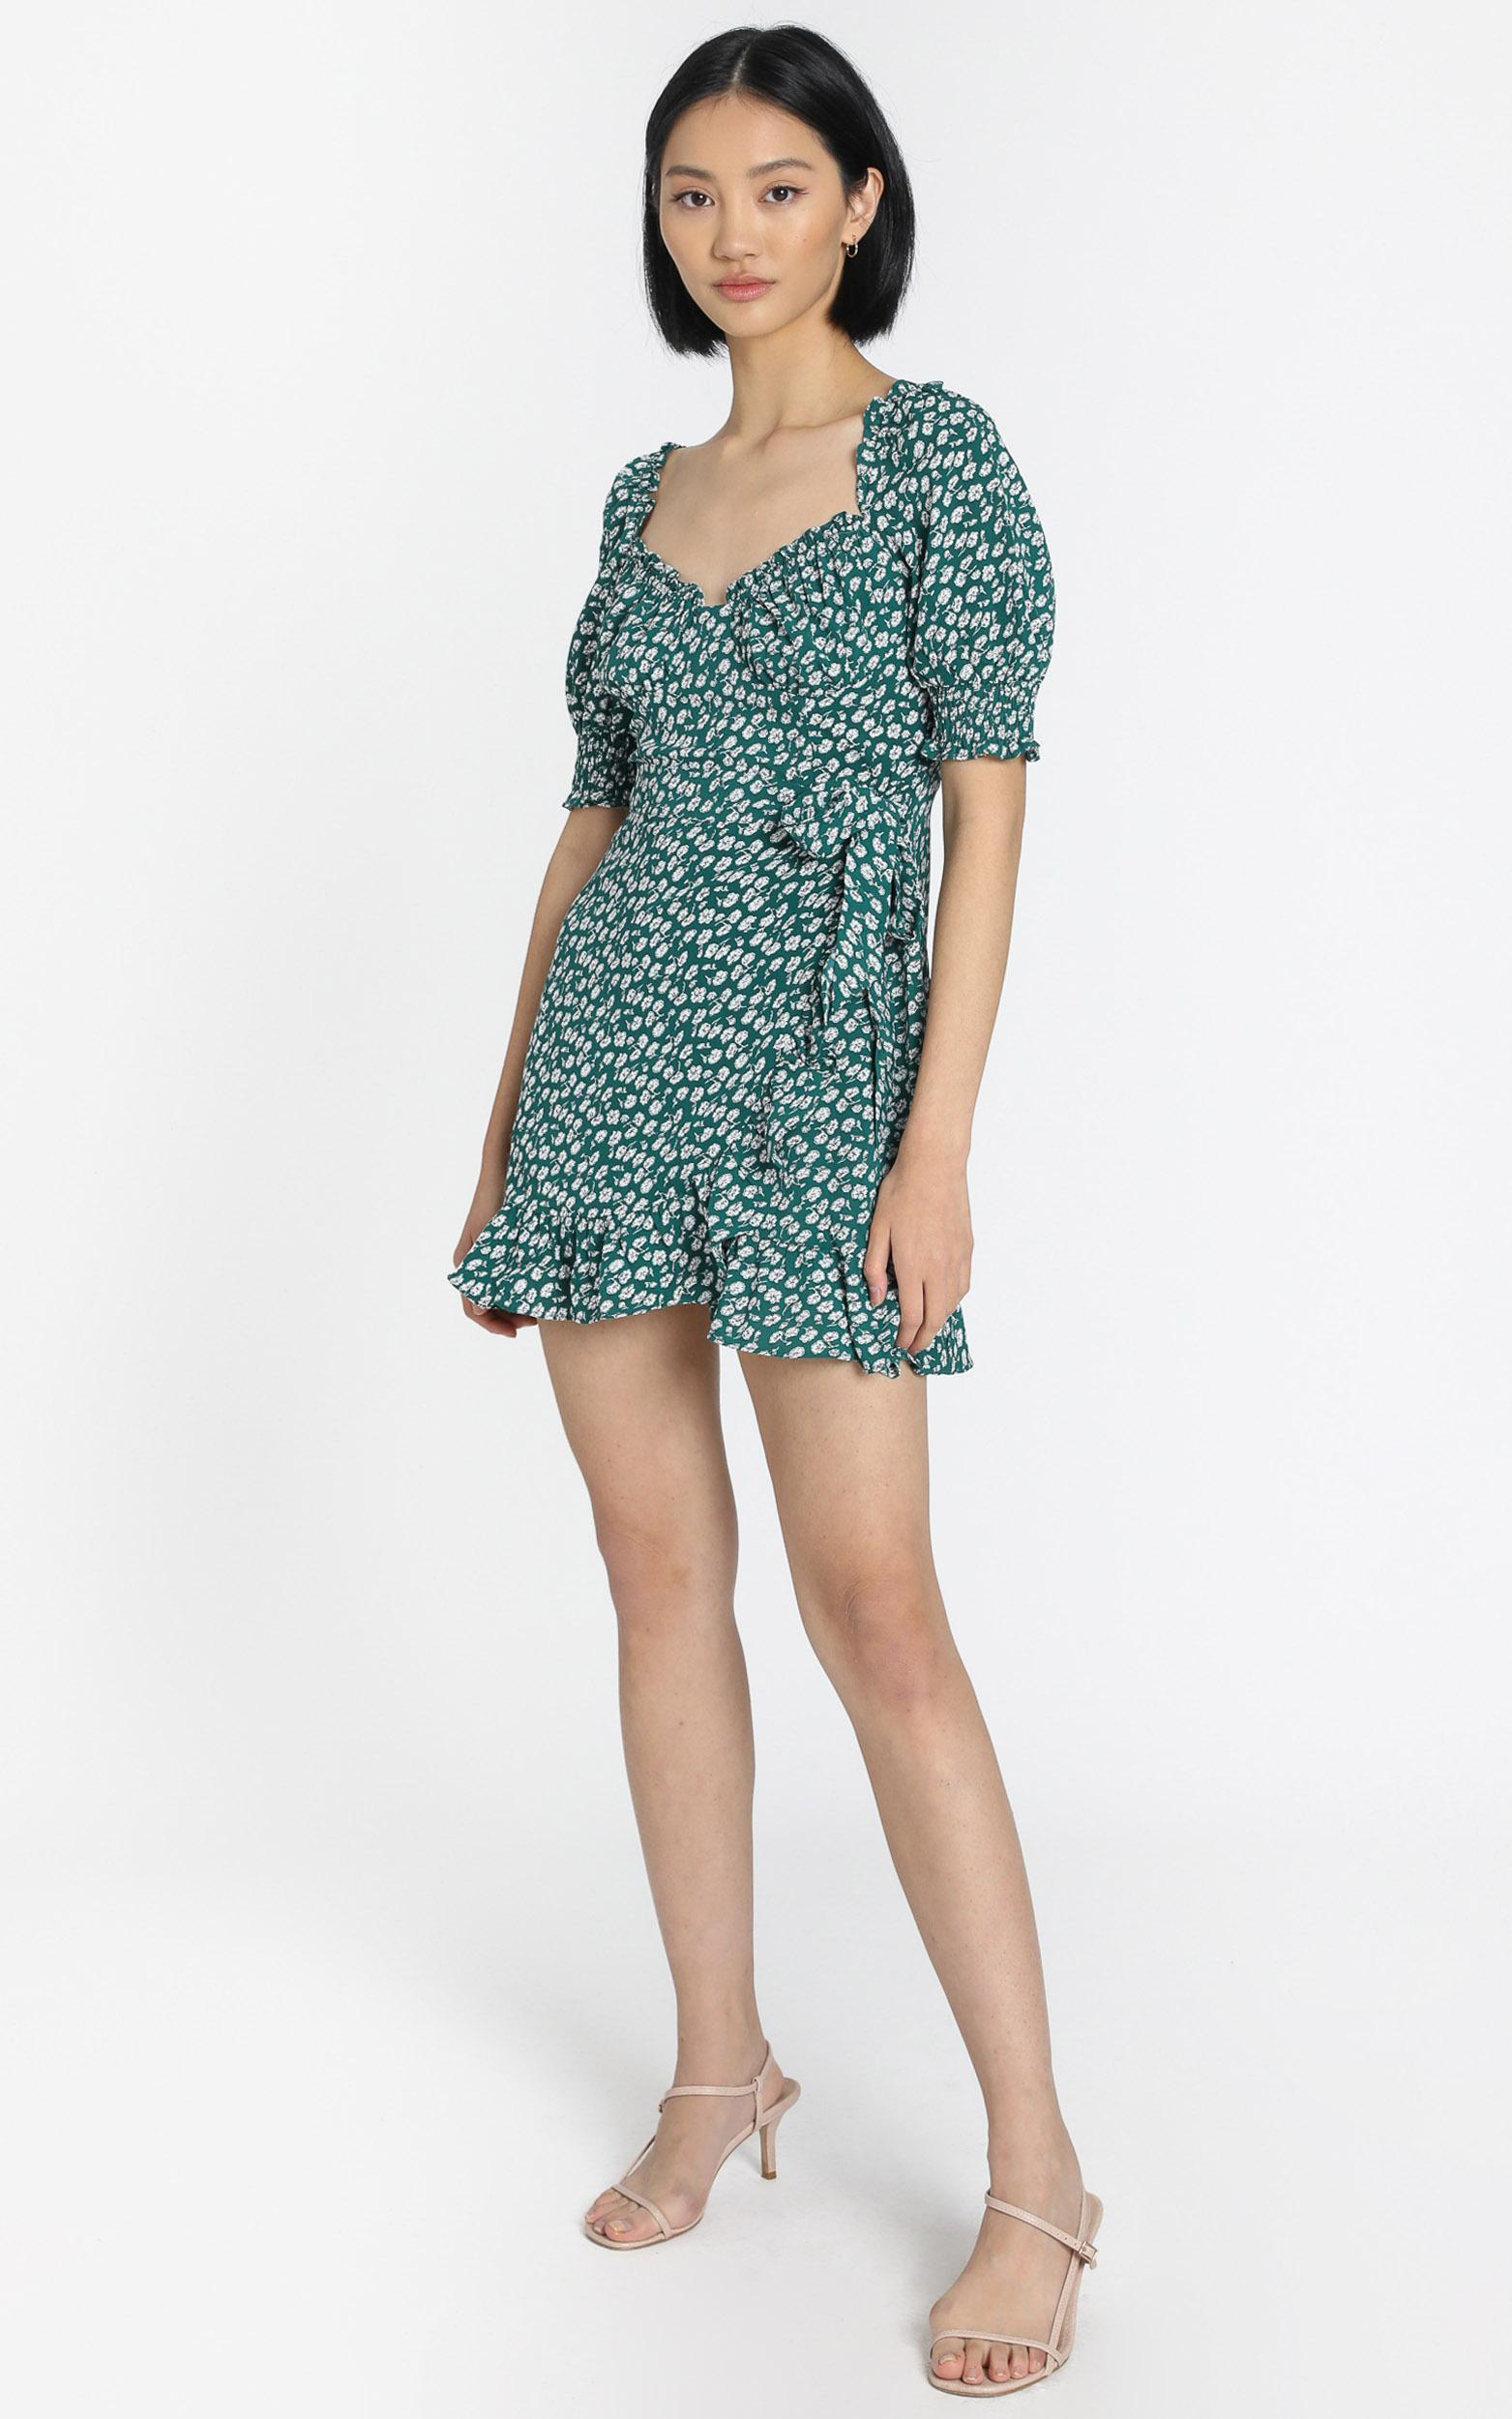 Evelina Dress in Green Floral - 6 (XS), Green, hi-res image number null